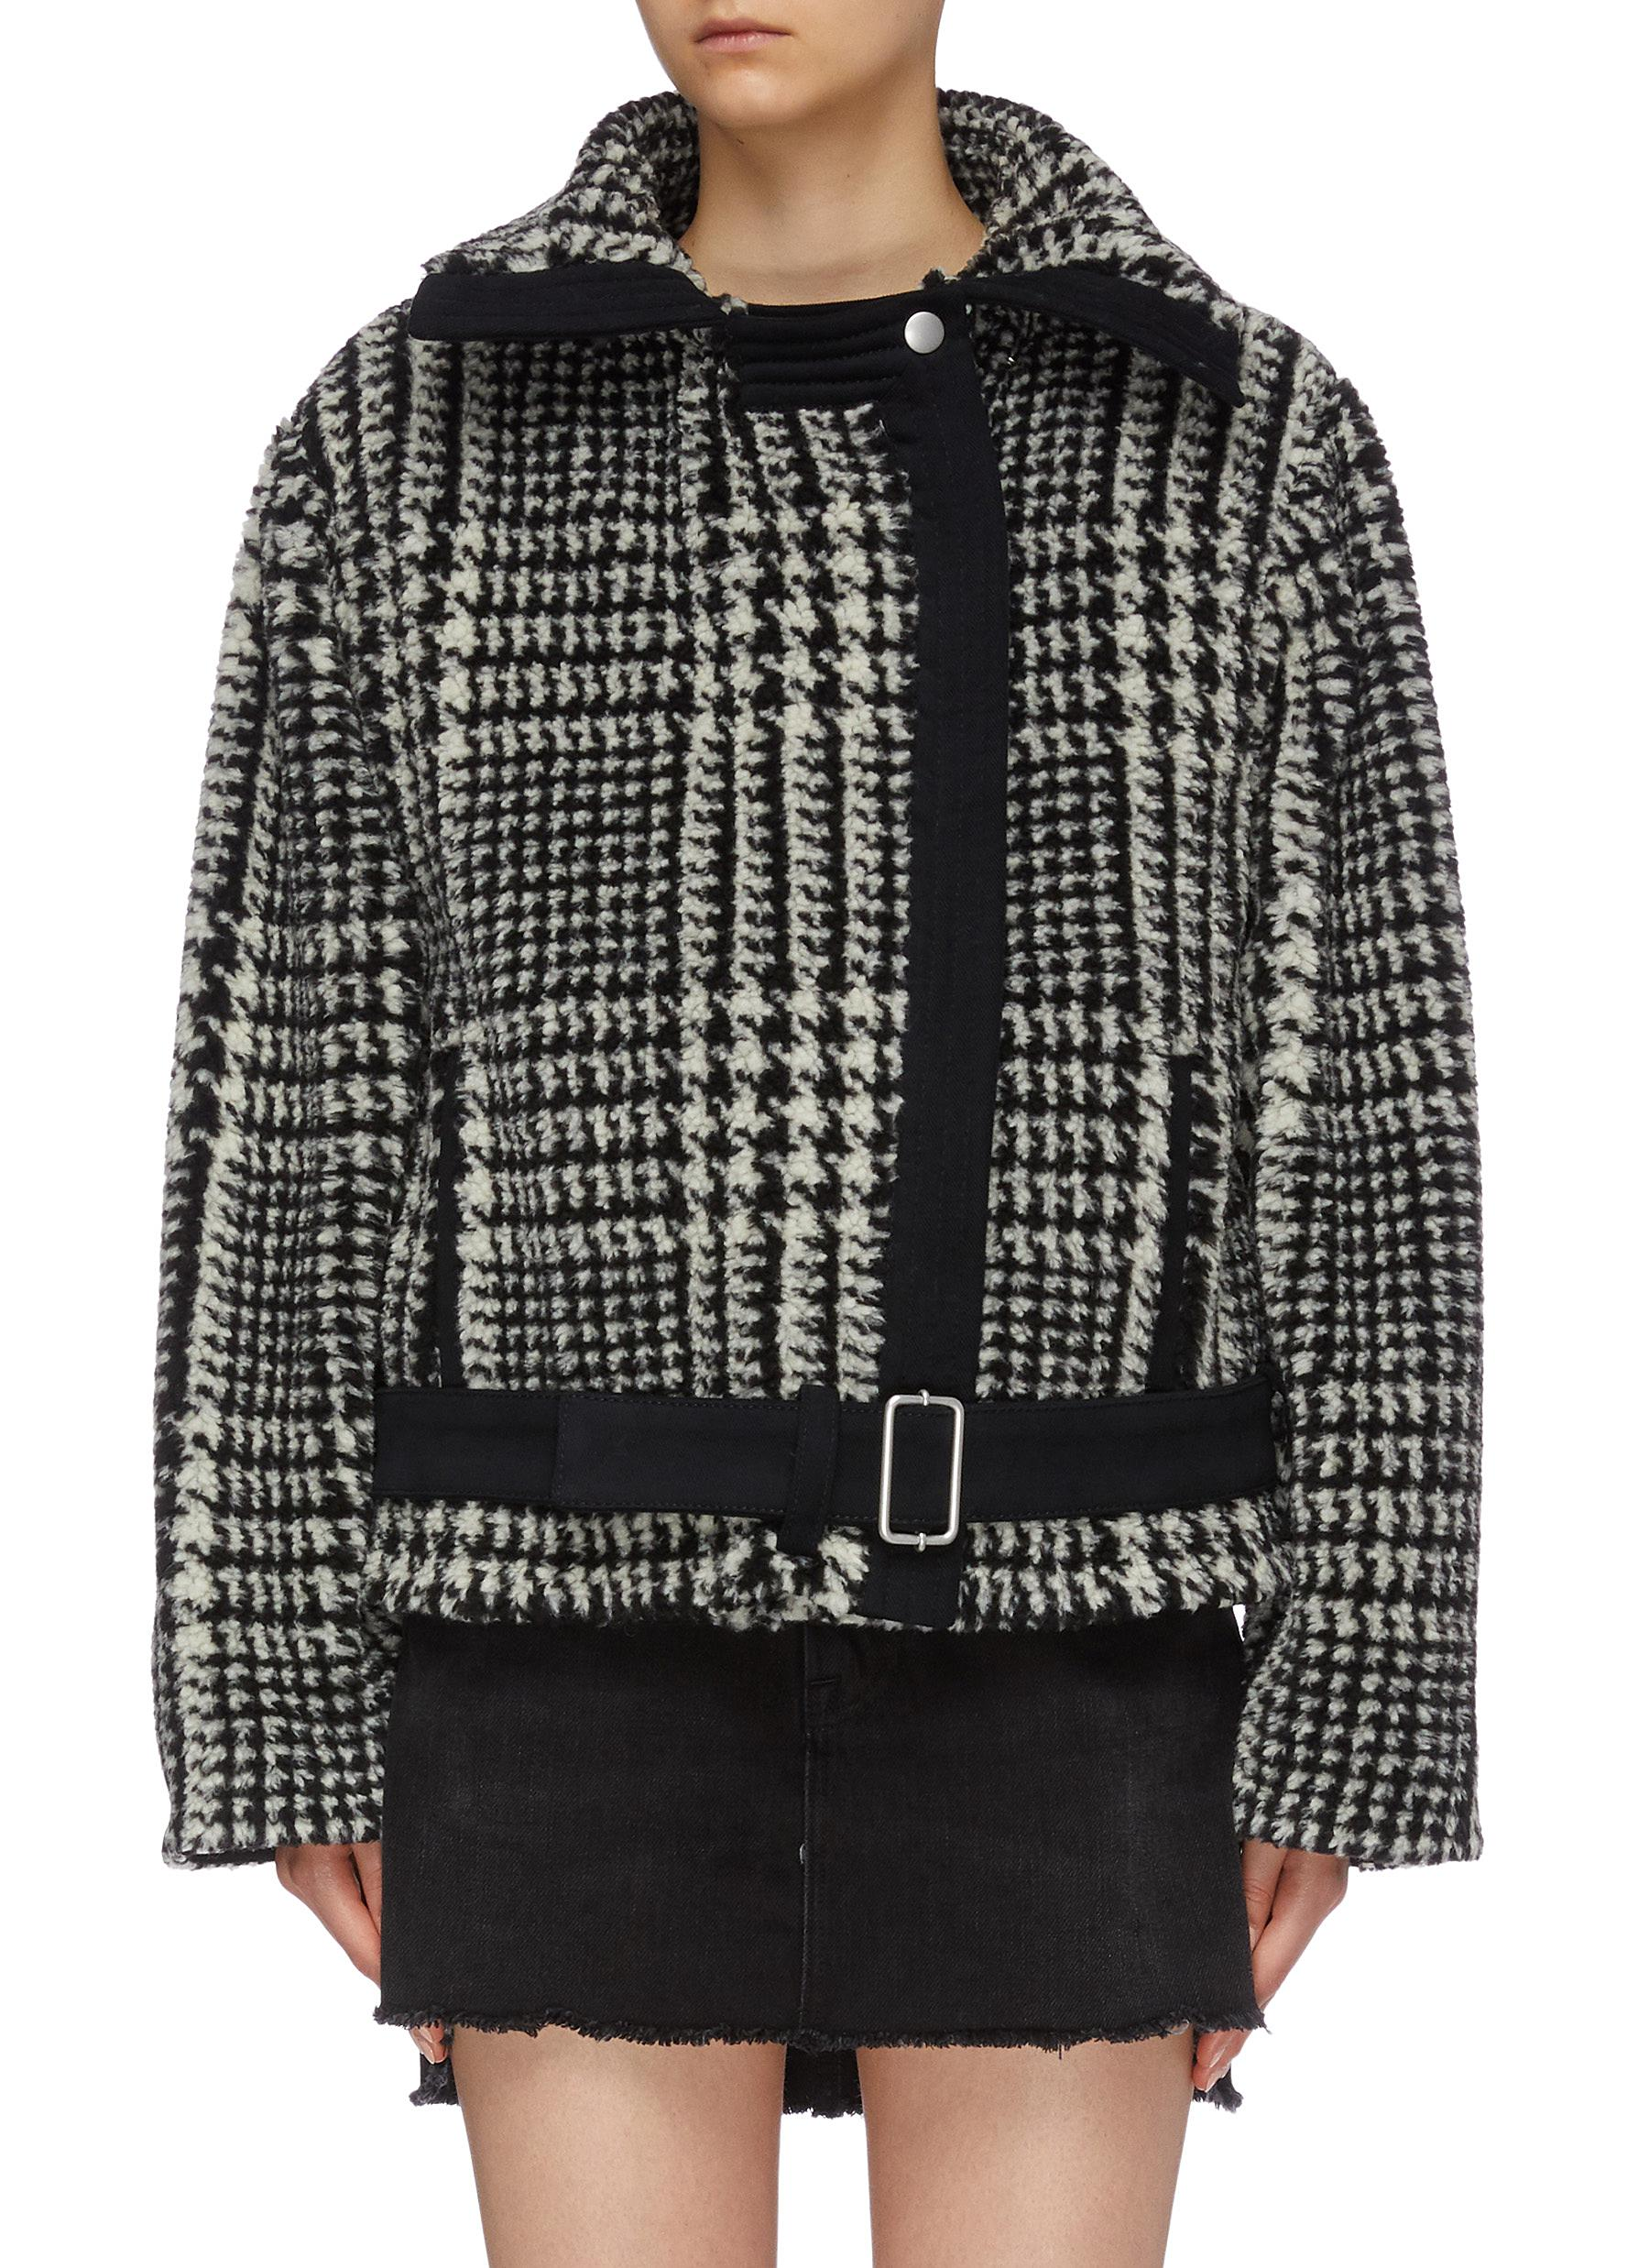 Houndstooth check plaid padded faux fur jacket by Philosophy Di Lorenzo Serafini